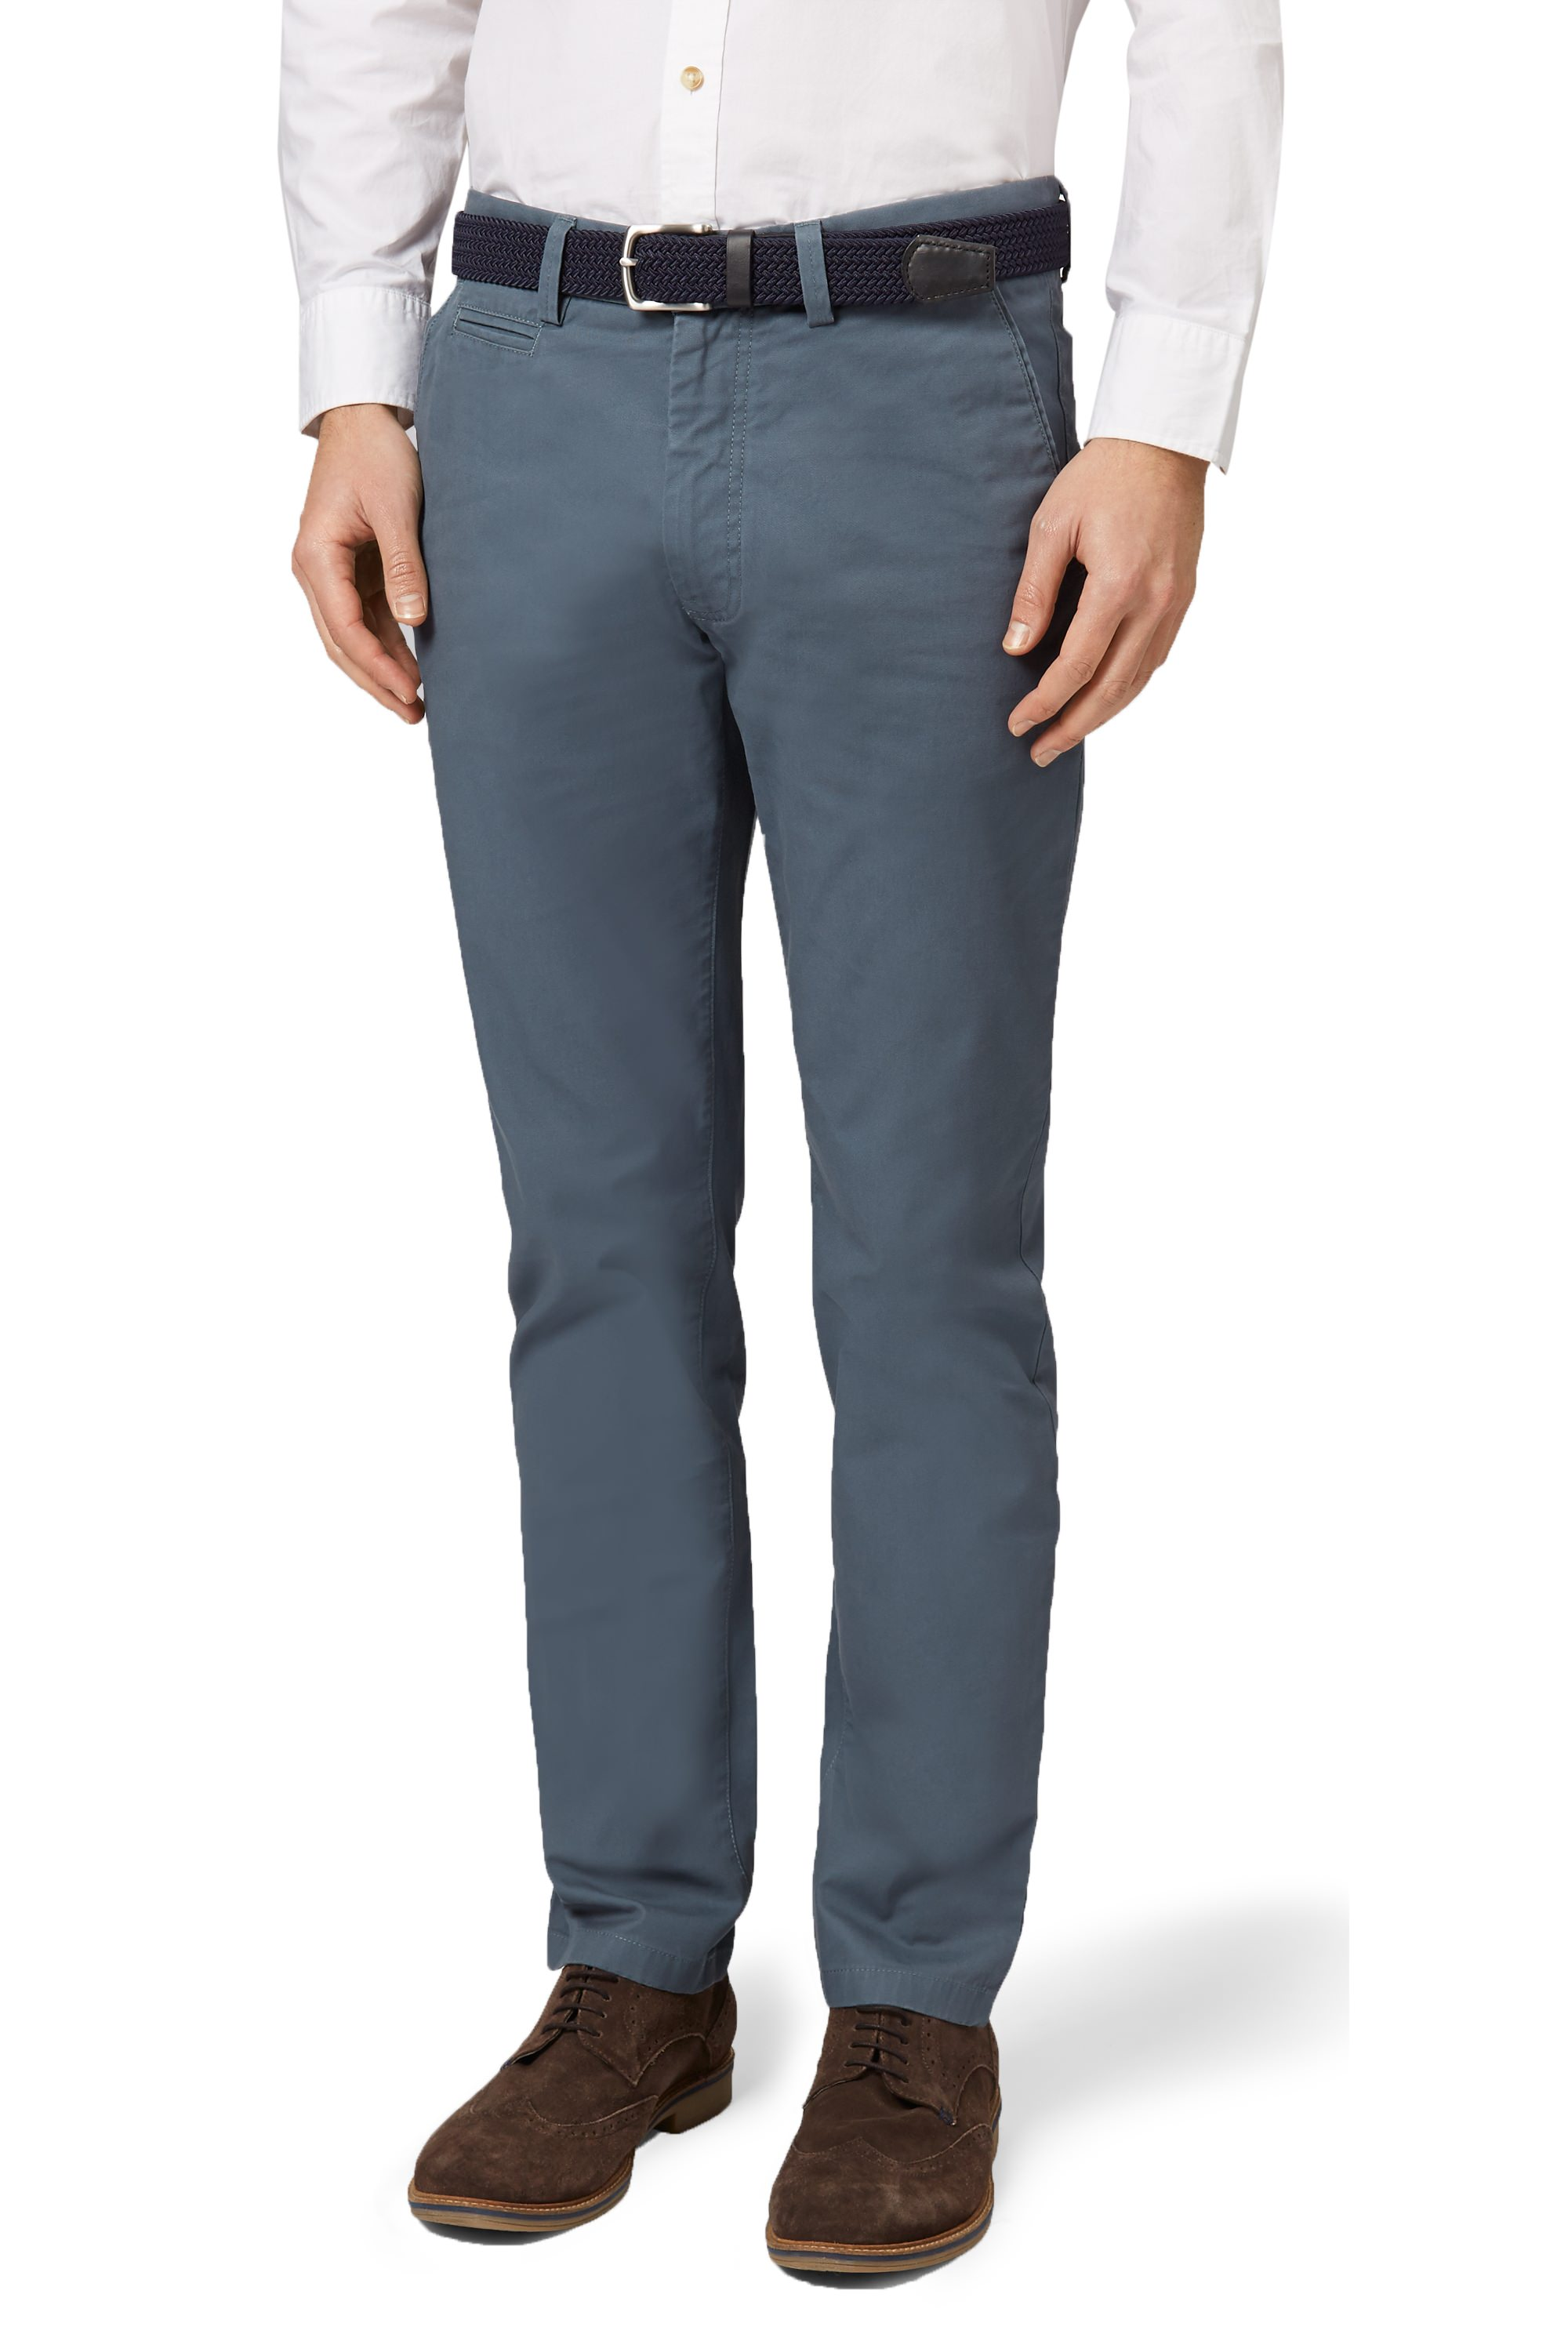 Find great deals on eBay for cotton trousers. Shop with confidence.